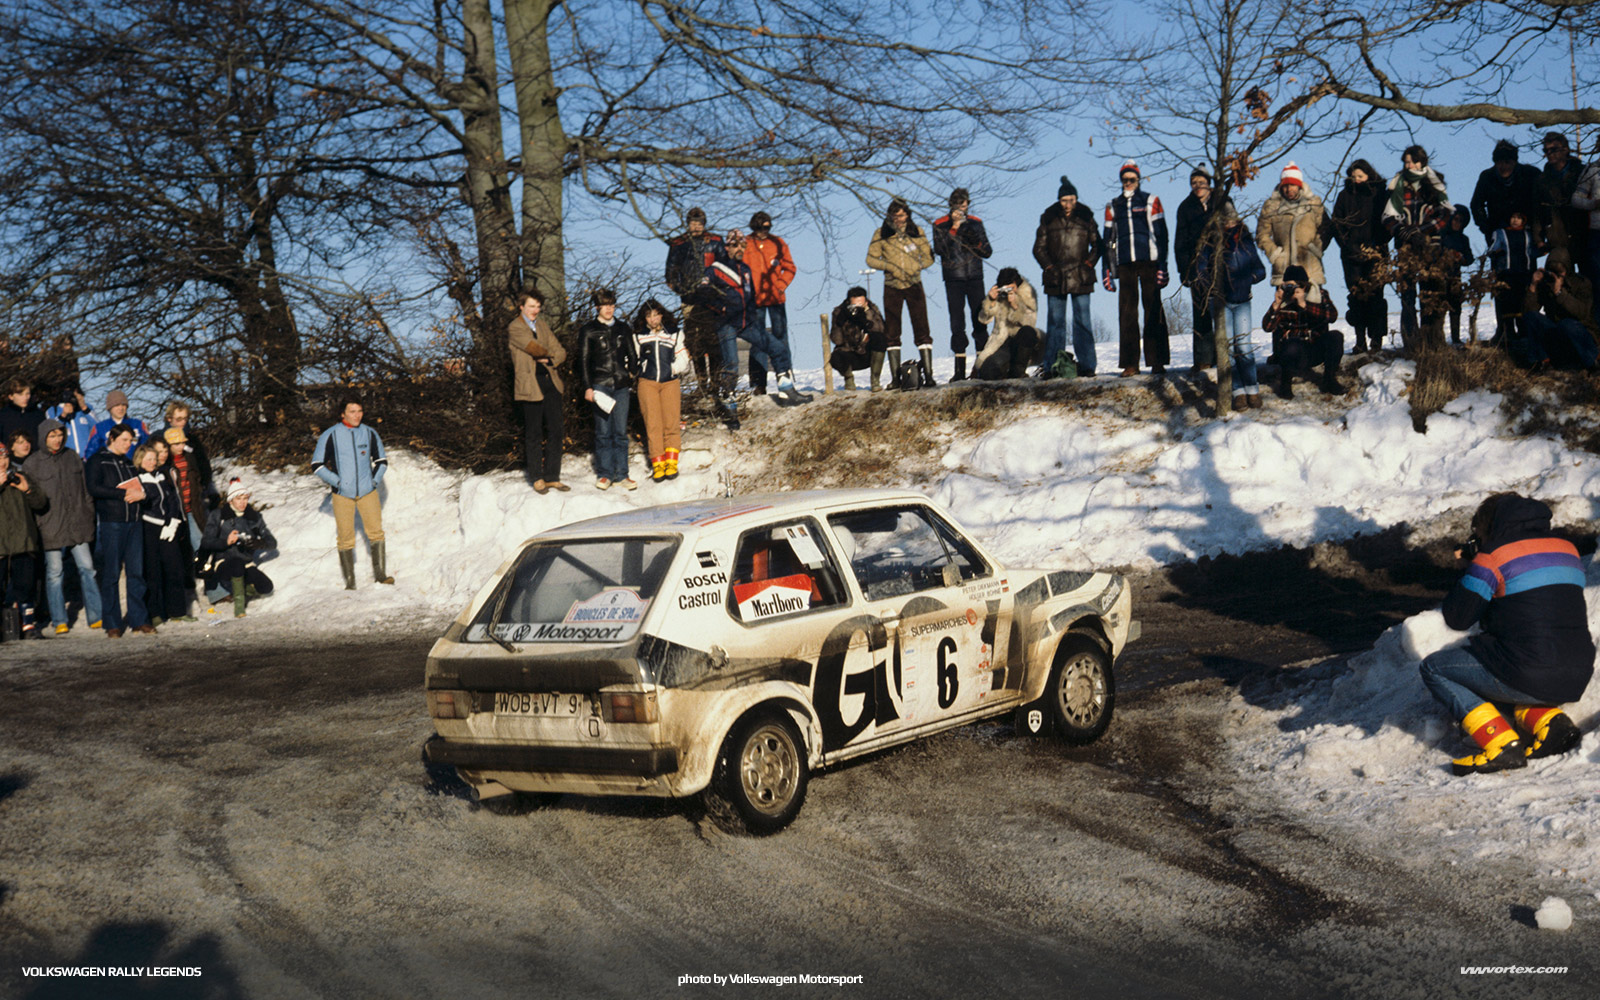 volkswagen-rally-legends-391